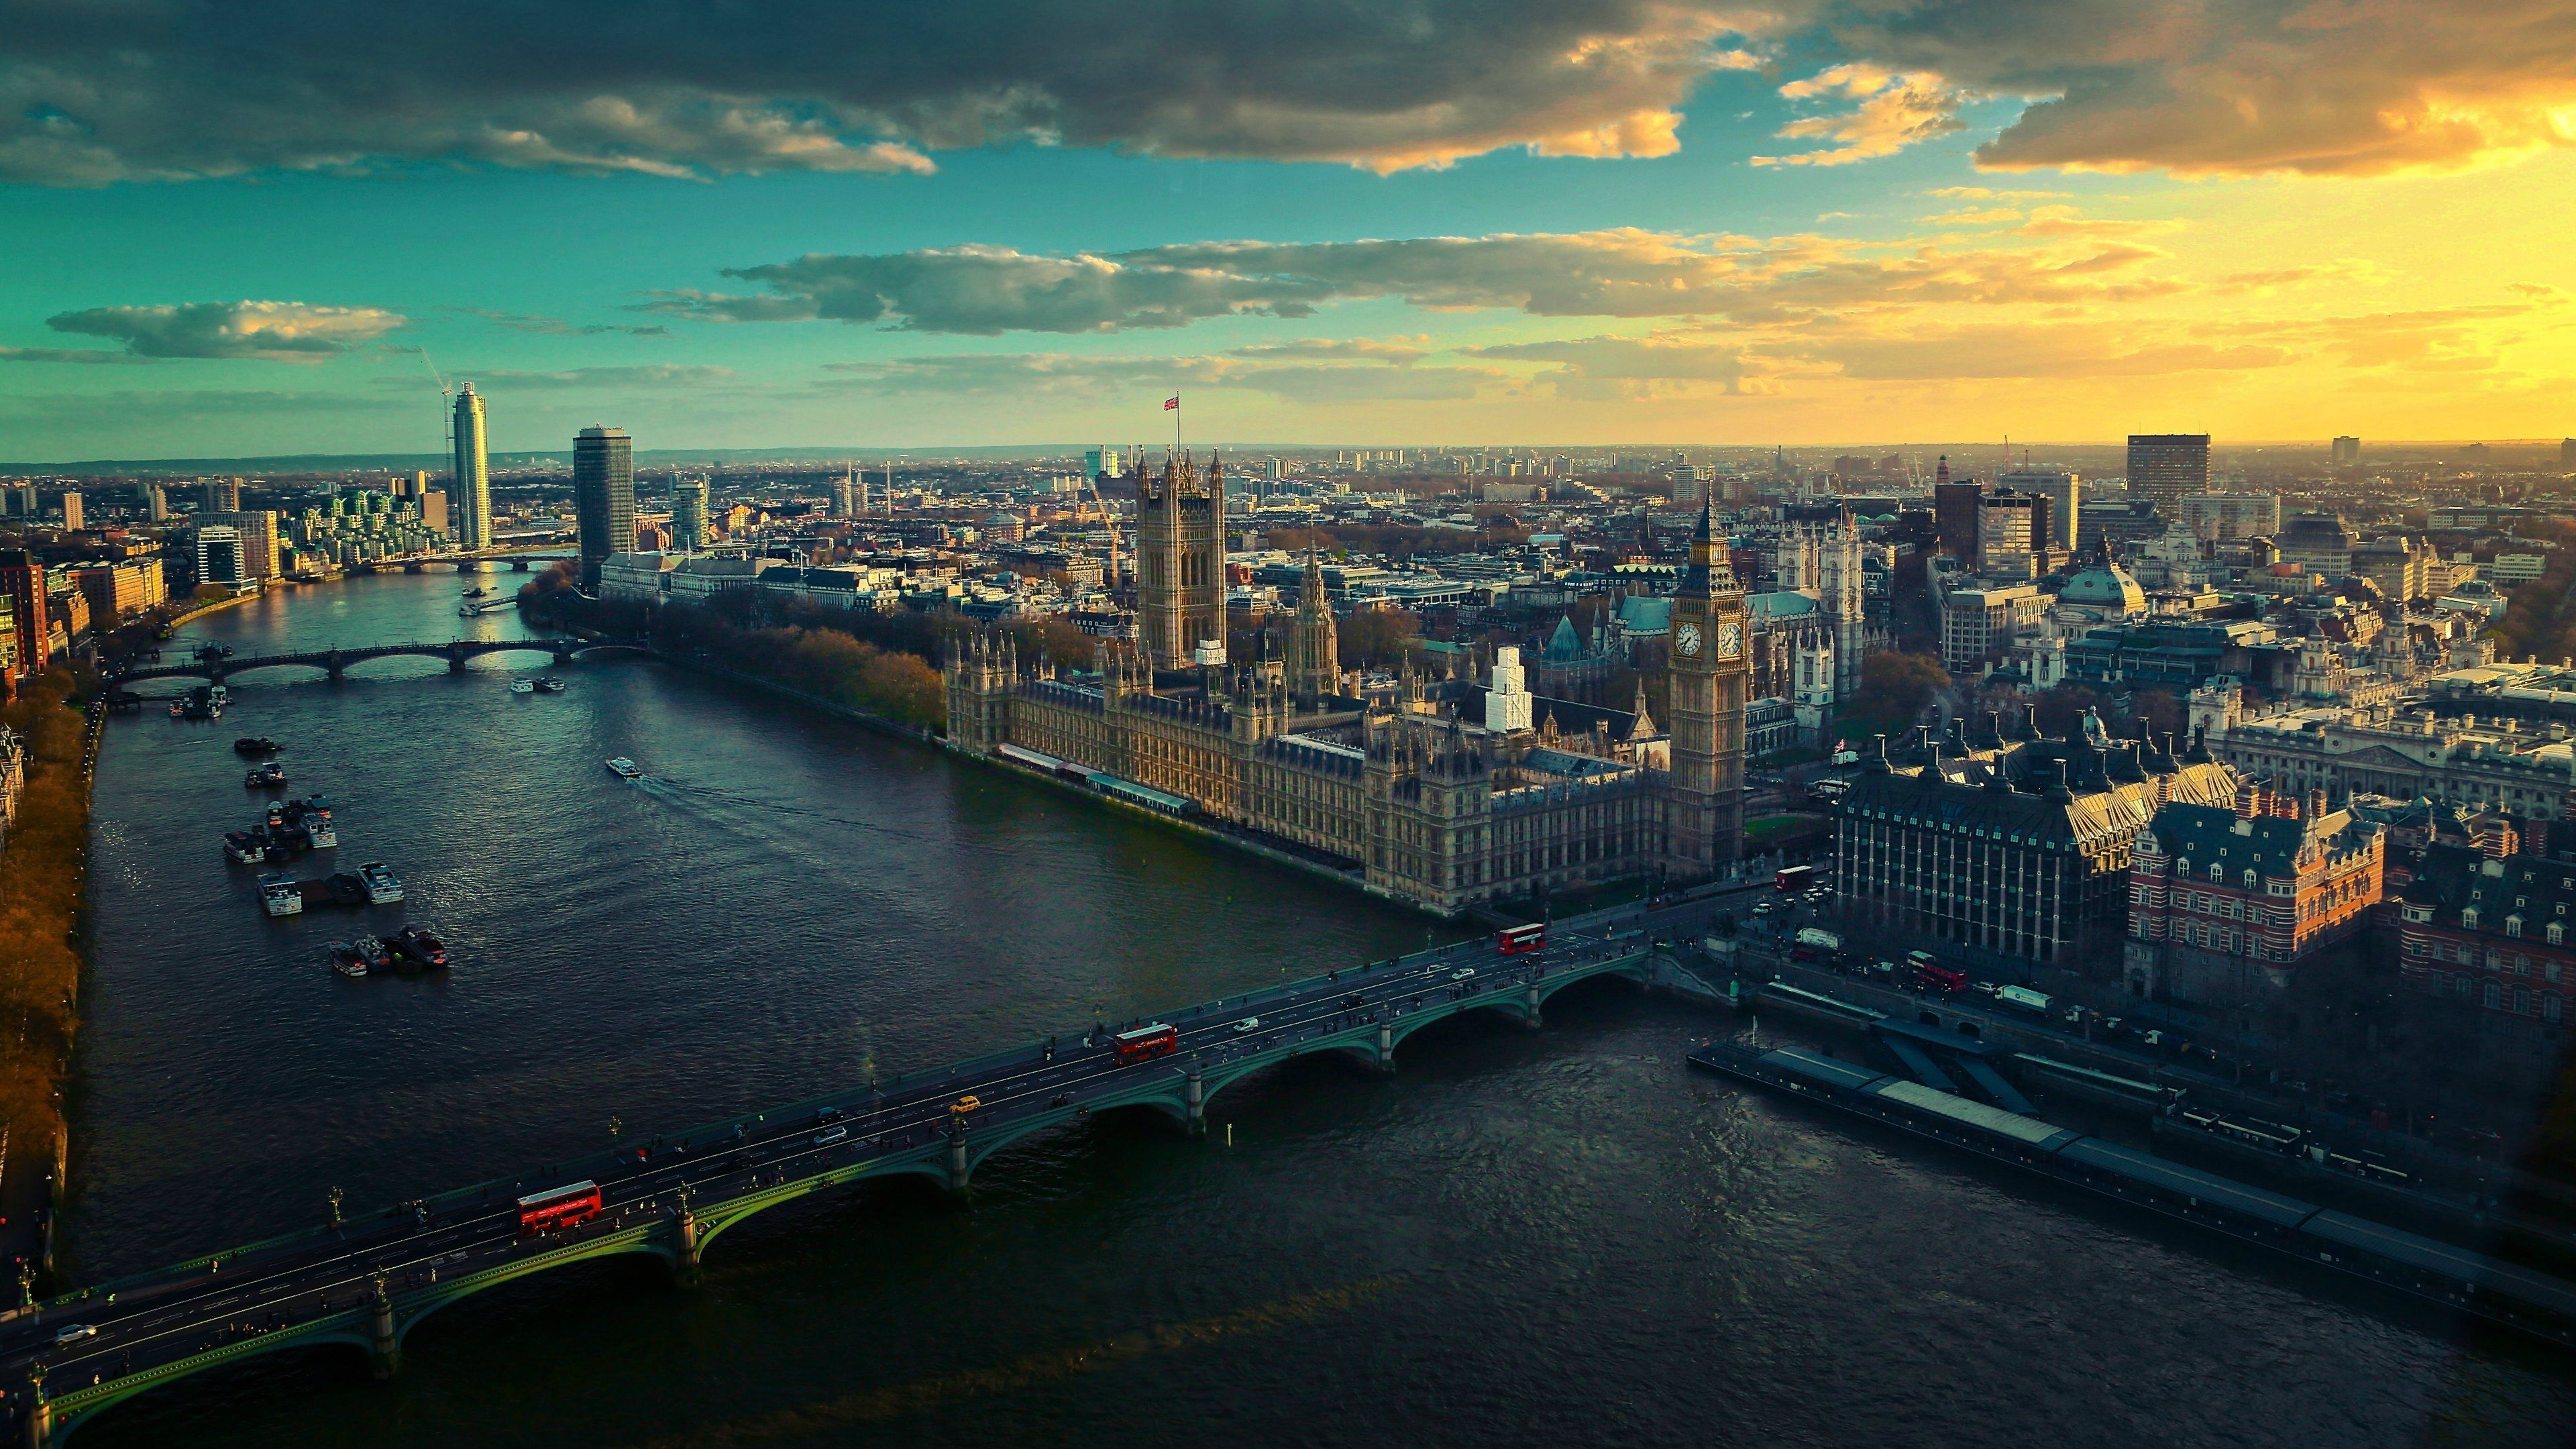 4k London Hd Wallpaper 3840x2160 London Skyline